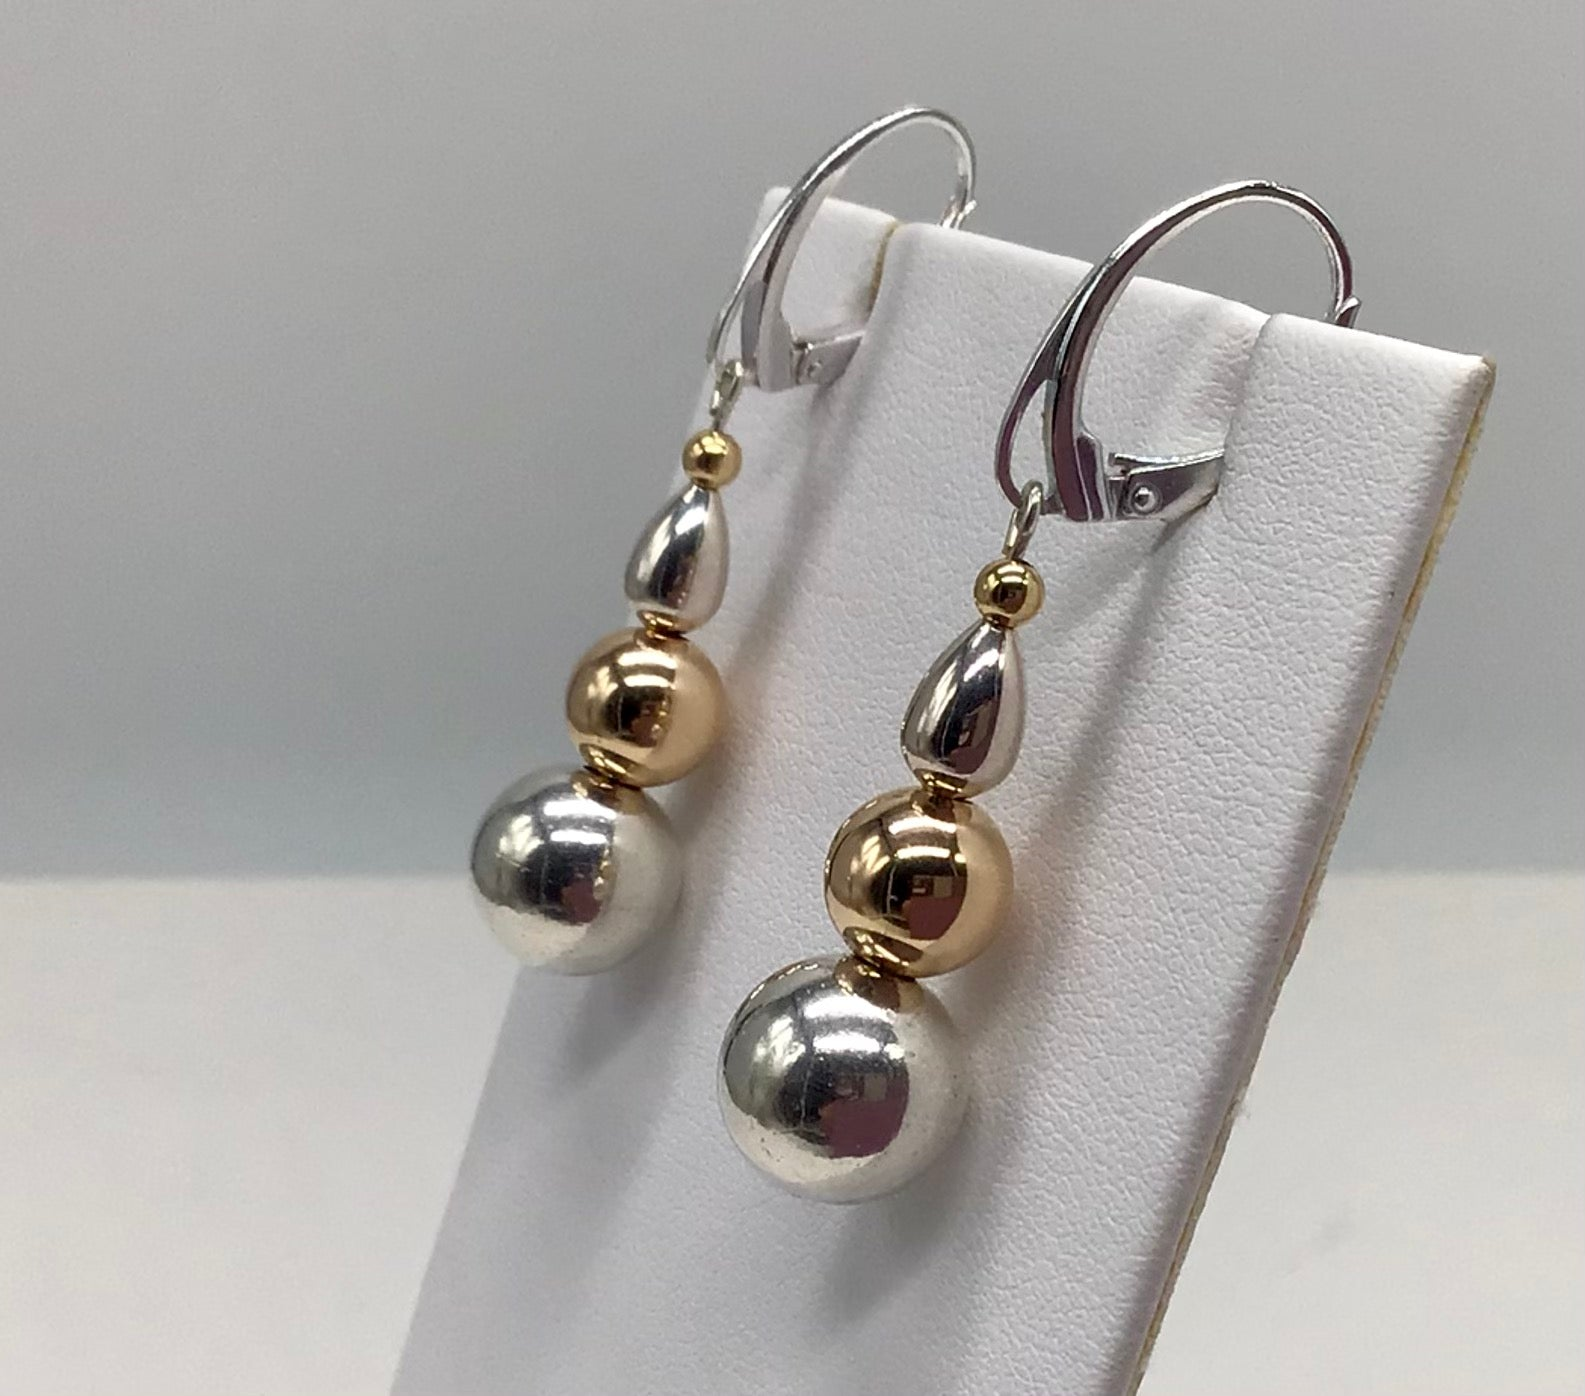 Dangling Sterling silver and 14 kt. Gold Cape Cod earrings